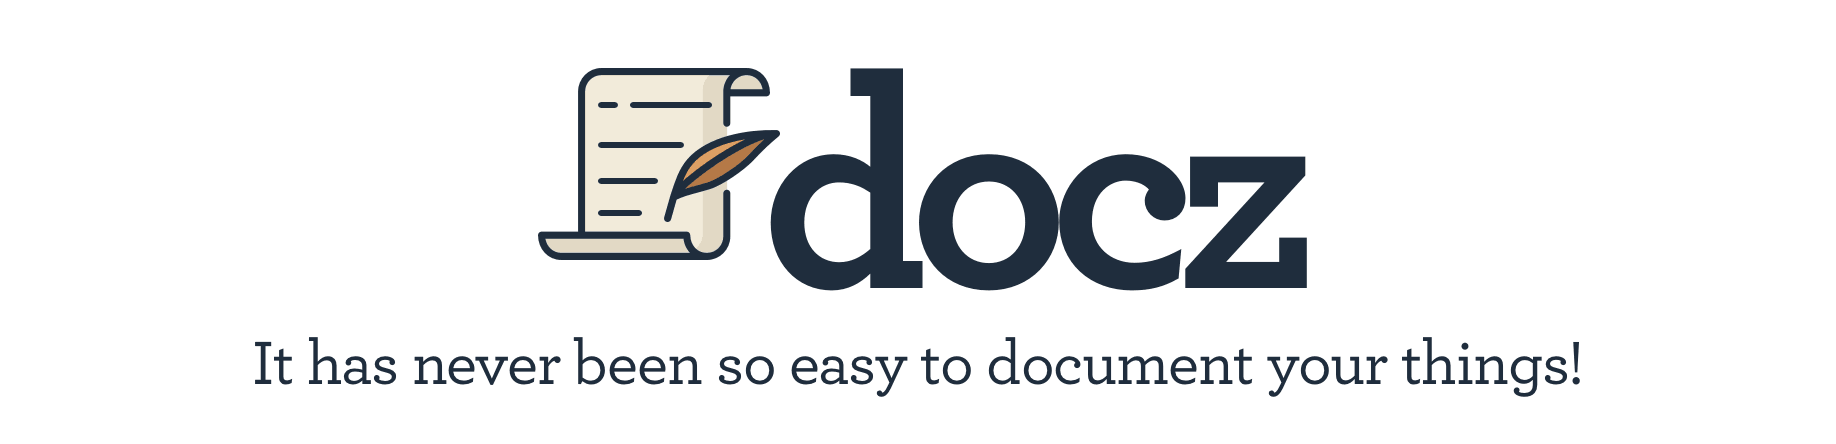 ✍ It has never been so easy to document your things!